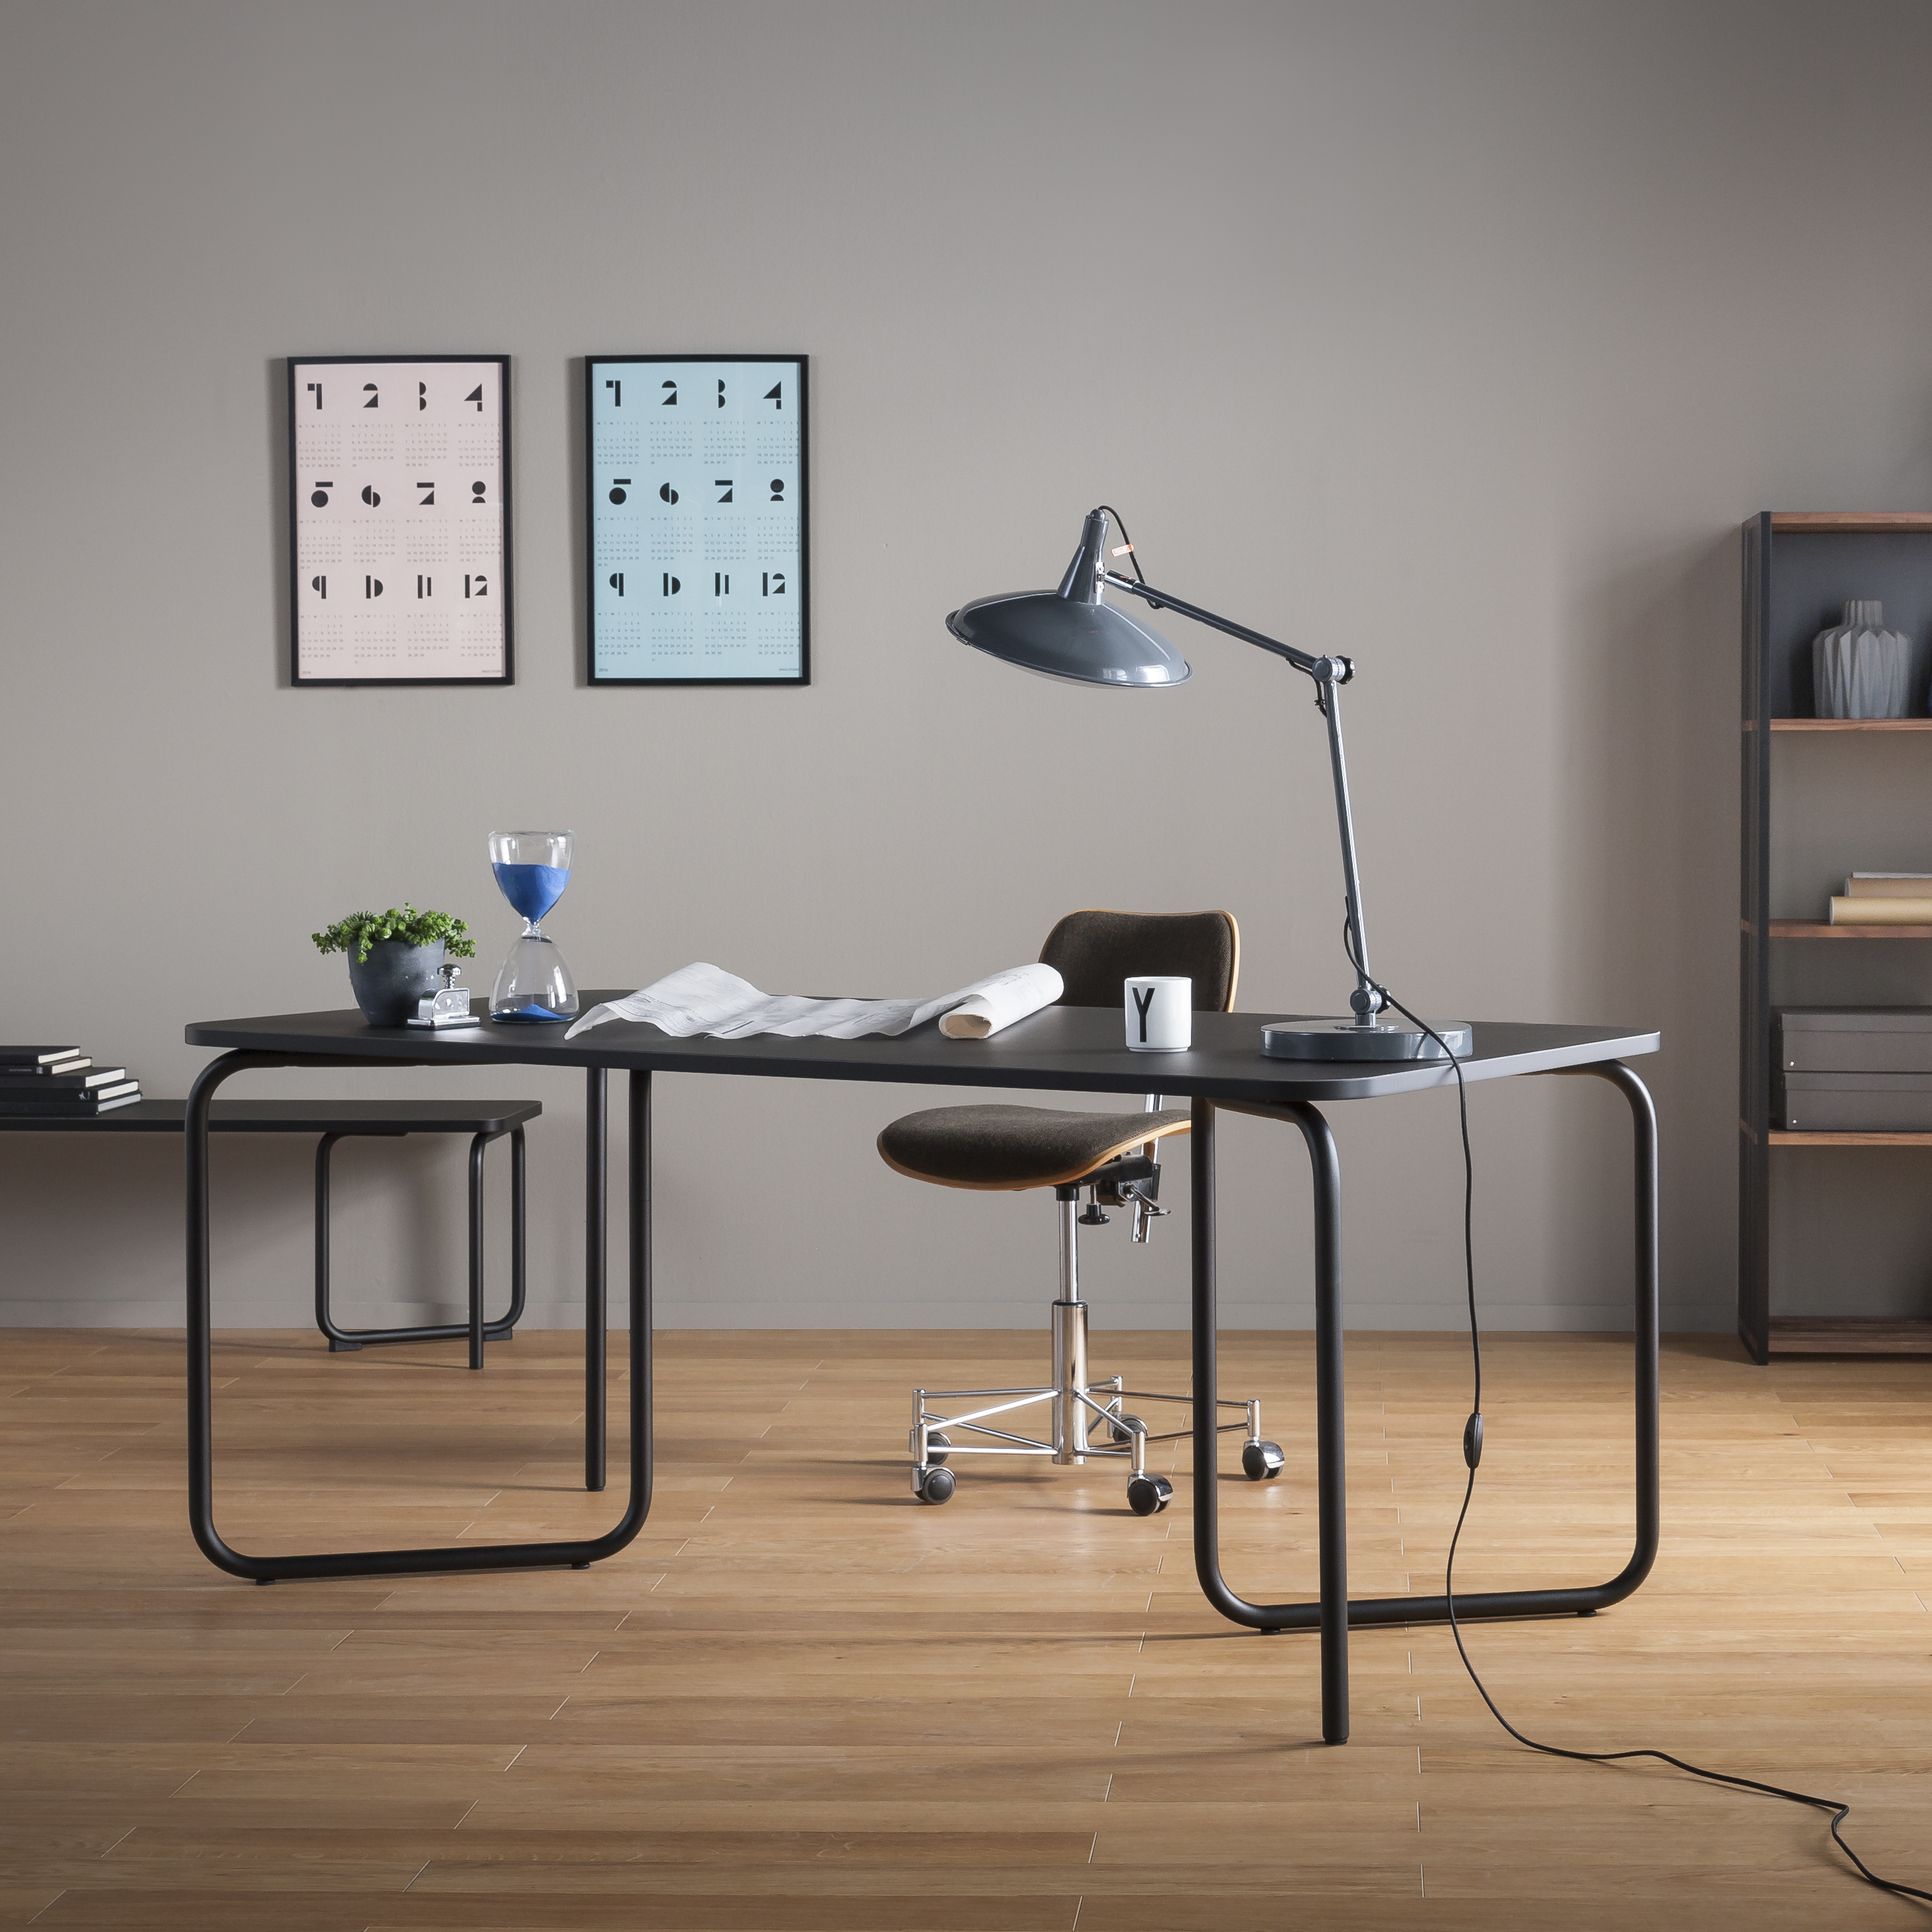 presseportal stuttgart blickfang internationale designmesse. Black Bedroom Furniture Sets. Home Design Ideas